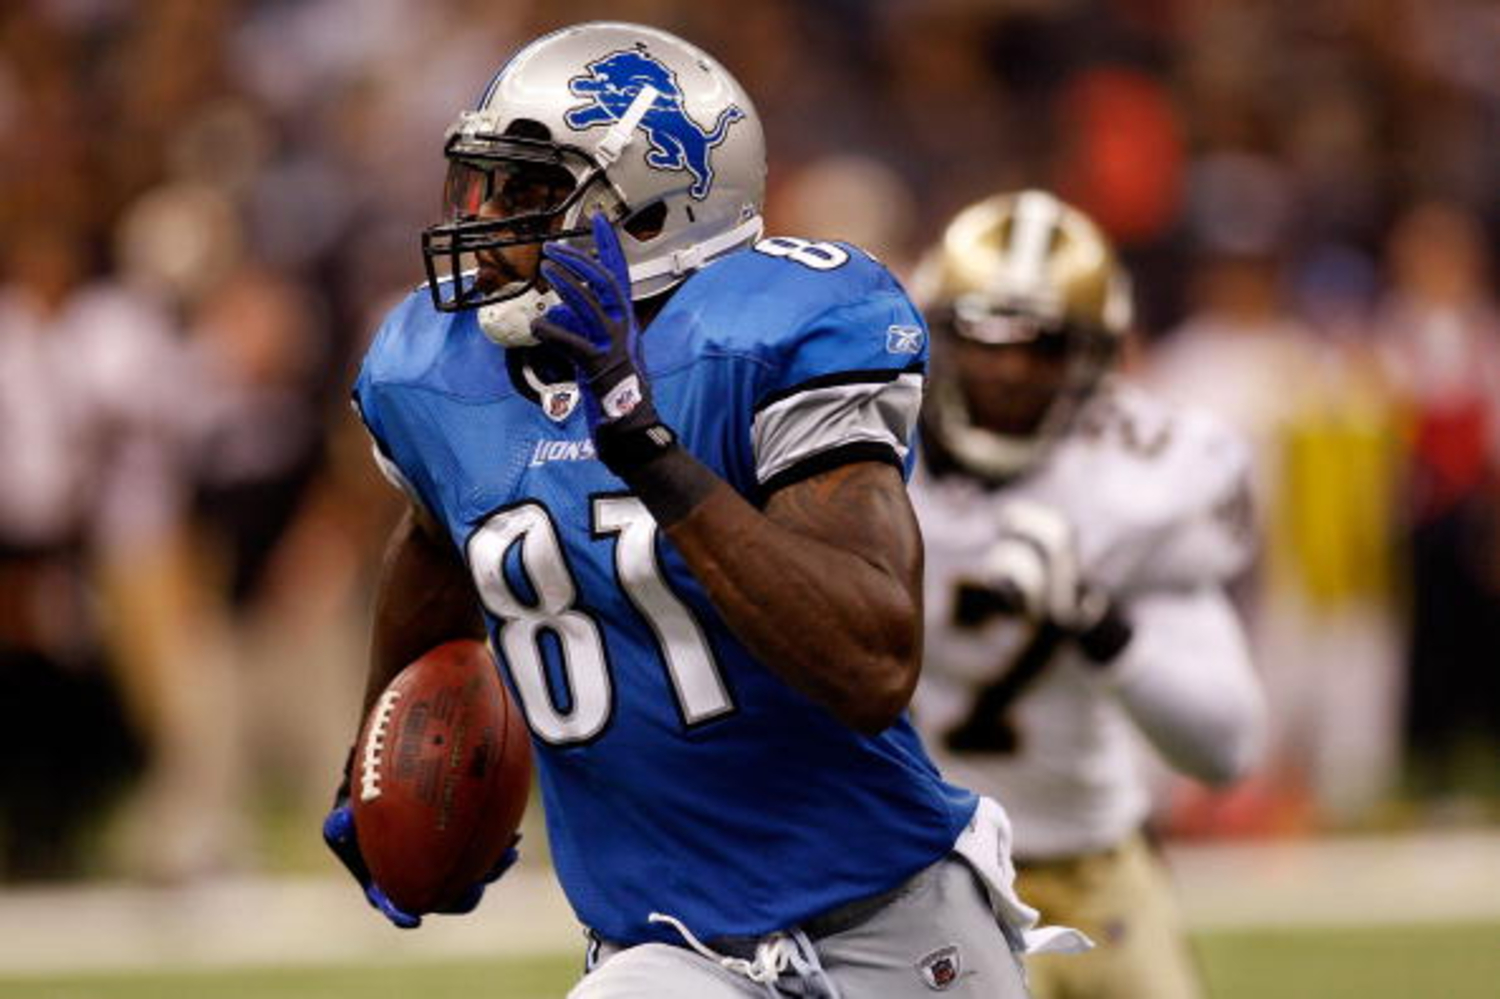 Calvin Johnson had a remarkable career with the Lions